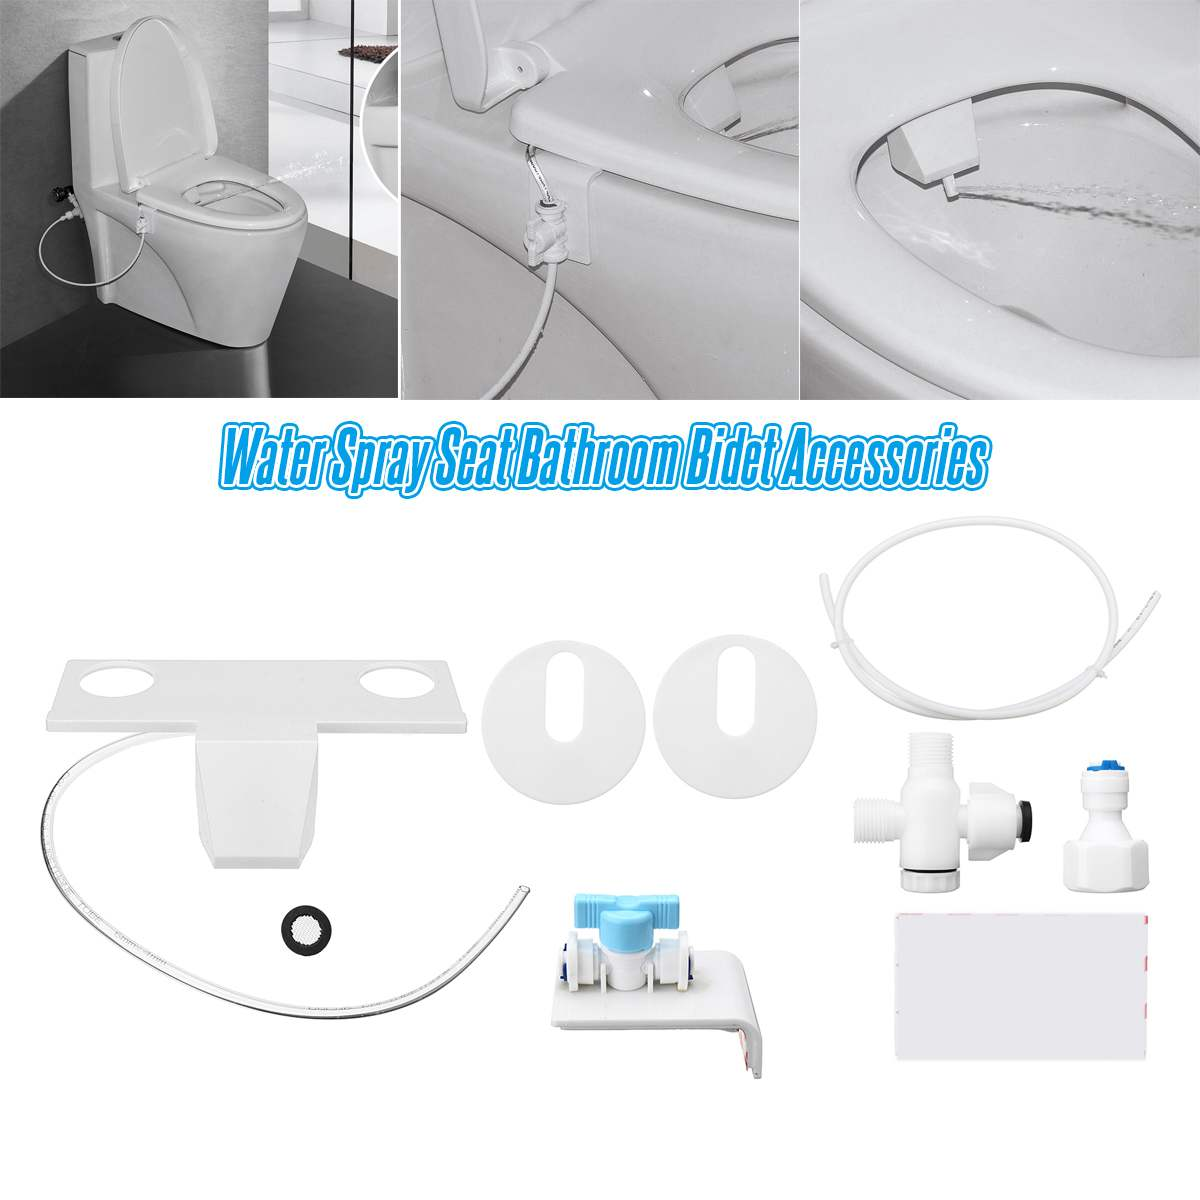 Bathroom Bidet Washing Guns Nozzle Professional Toilet Water Spray Seat Fresh for Bathroom Bidet Parts Accessories